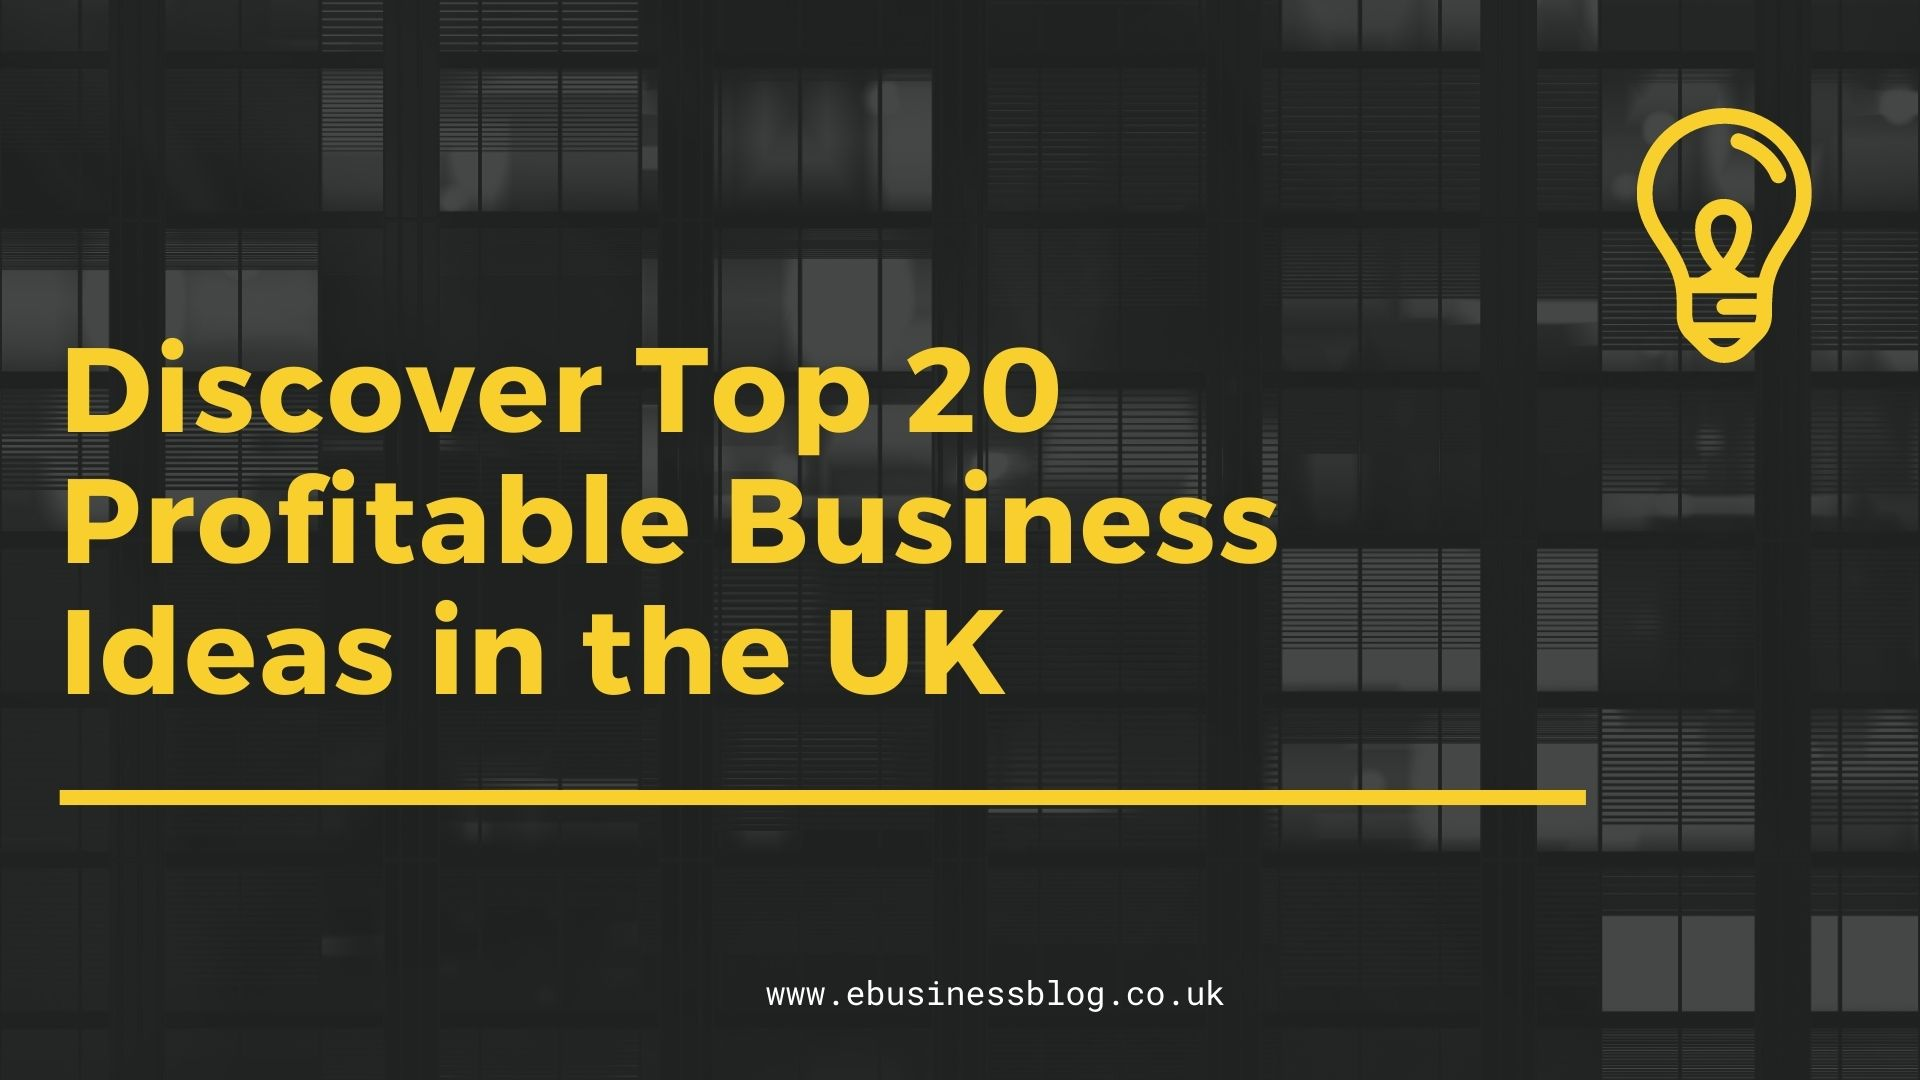 Discover Top 20 Profitable Business Ideas in the UK